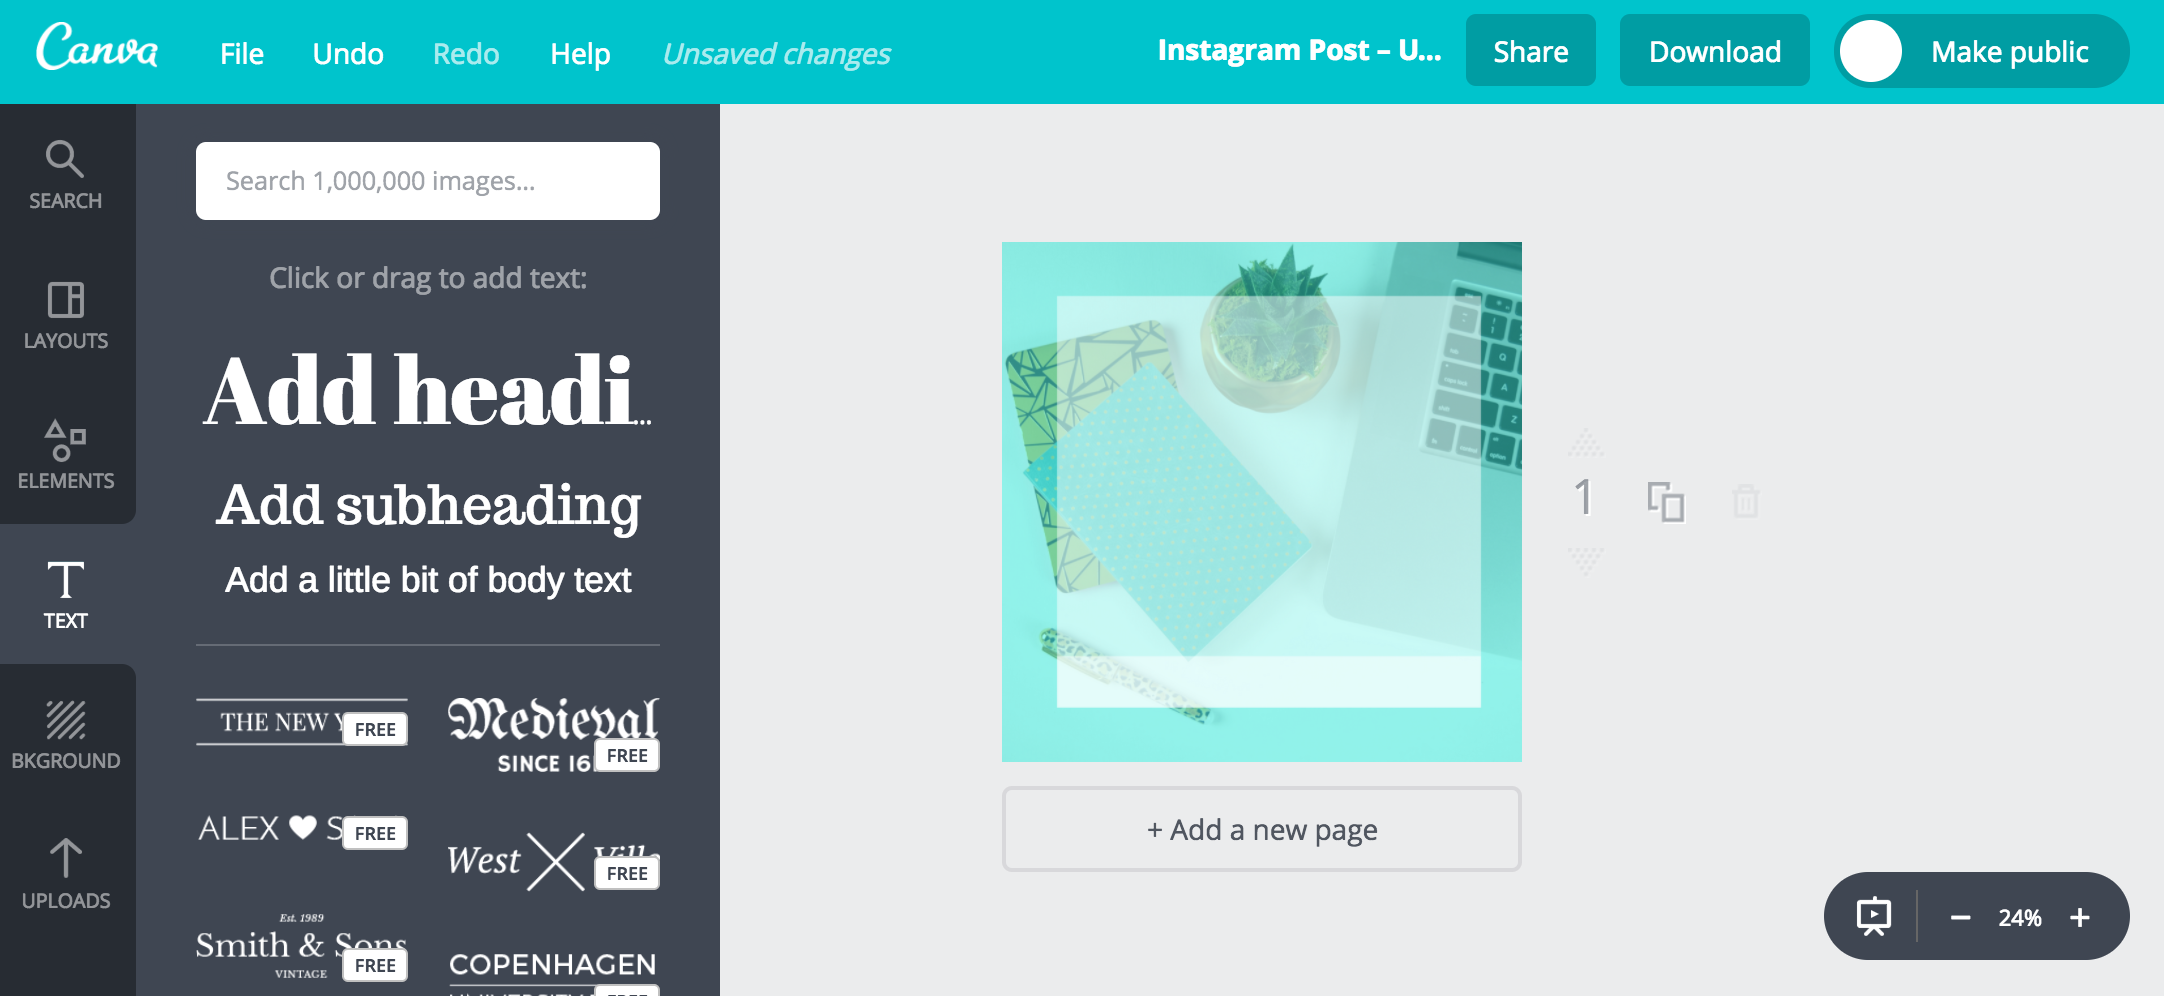 Bold & Pop : Bold Boss School Customizing Bold Boss School Resource Library Graphics in Canva